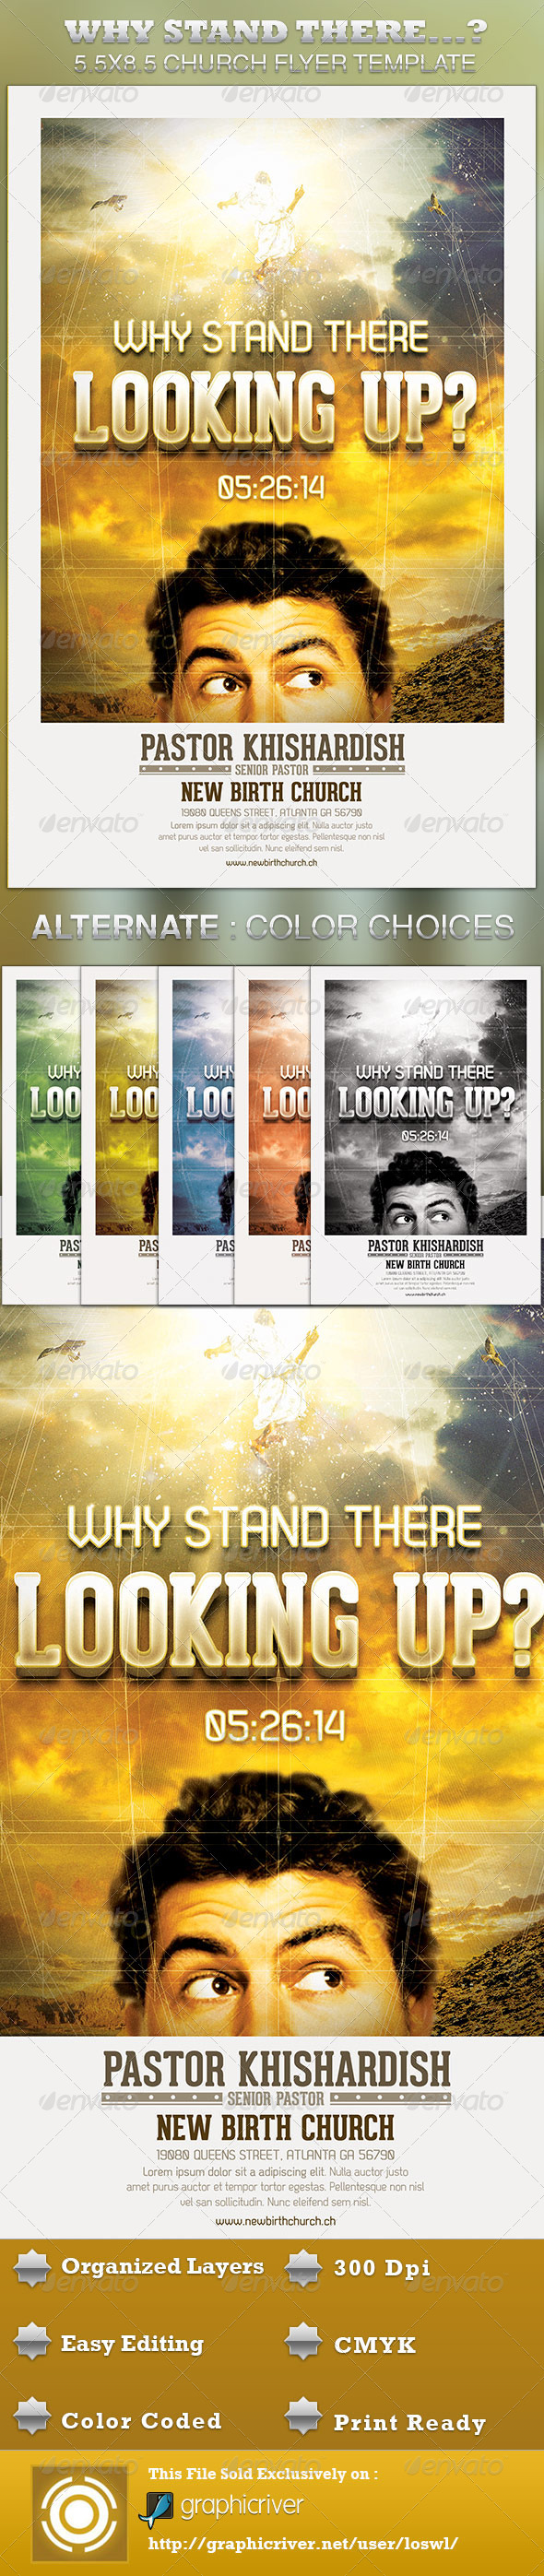 Why Stand There Looking Up Church Flyer Template - Church Flyers